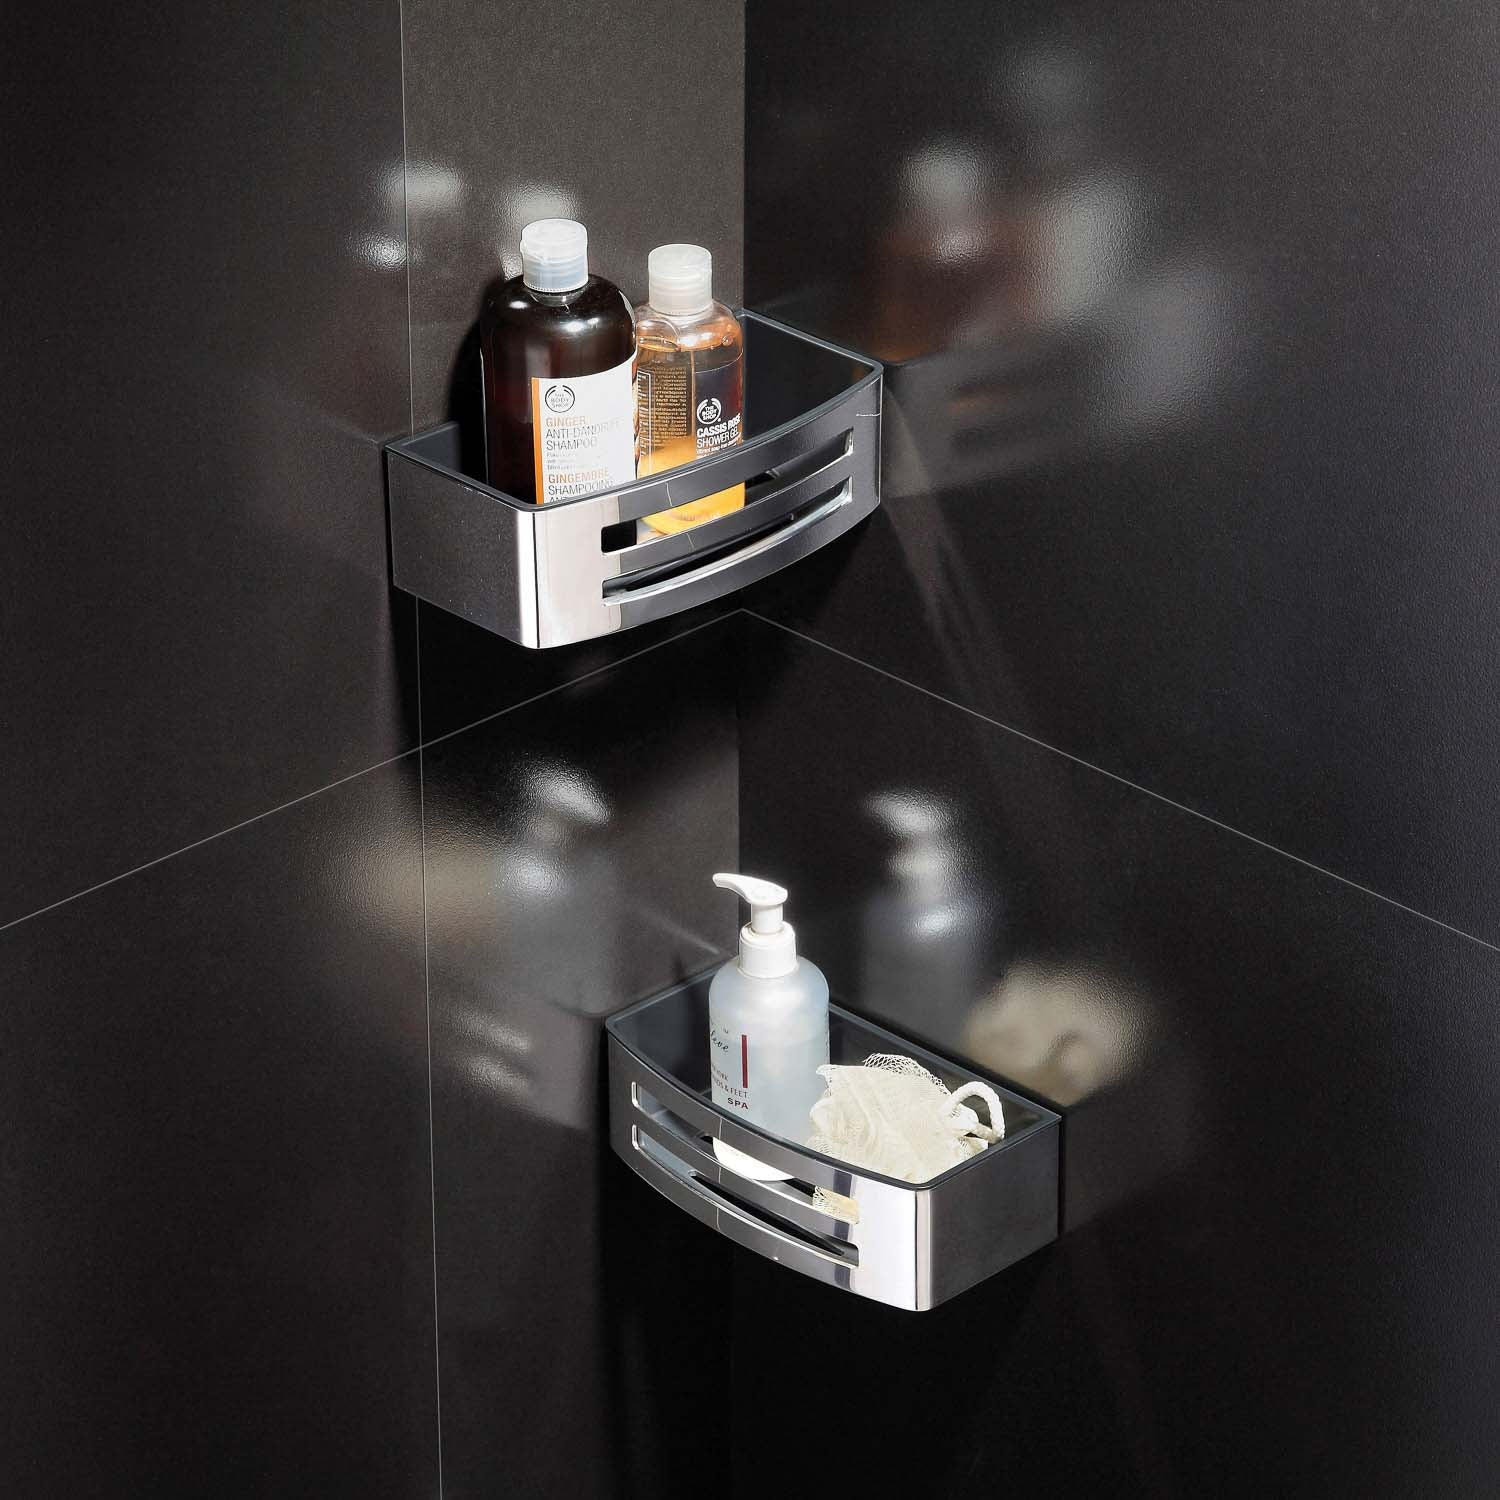 Easyclean Shower Basket with a chrome finish and black removable insert lifestyle image